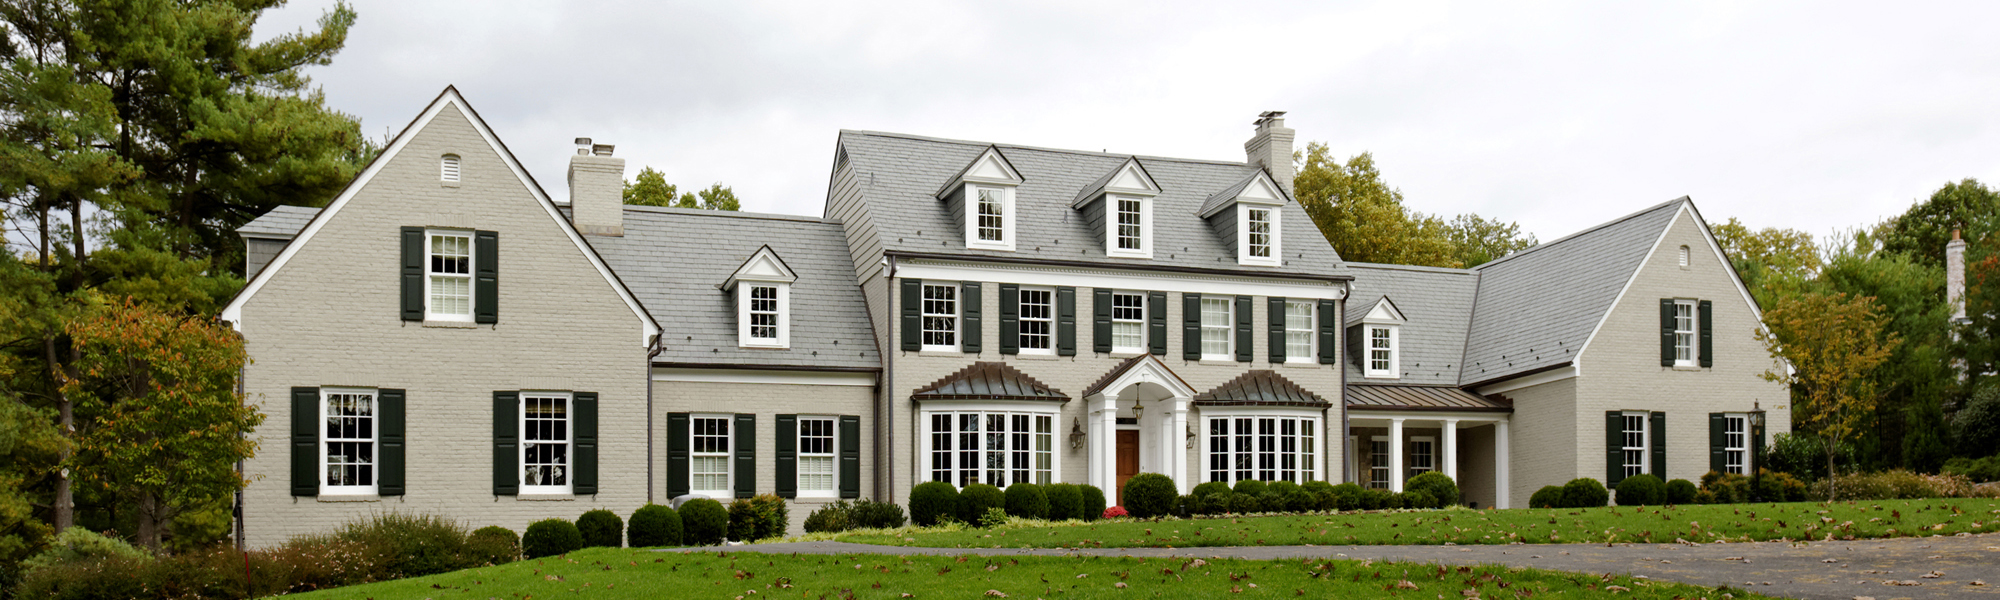 Whole House Renovation with 2 additions in Potomac MD